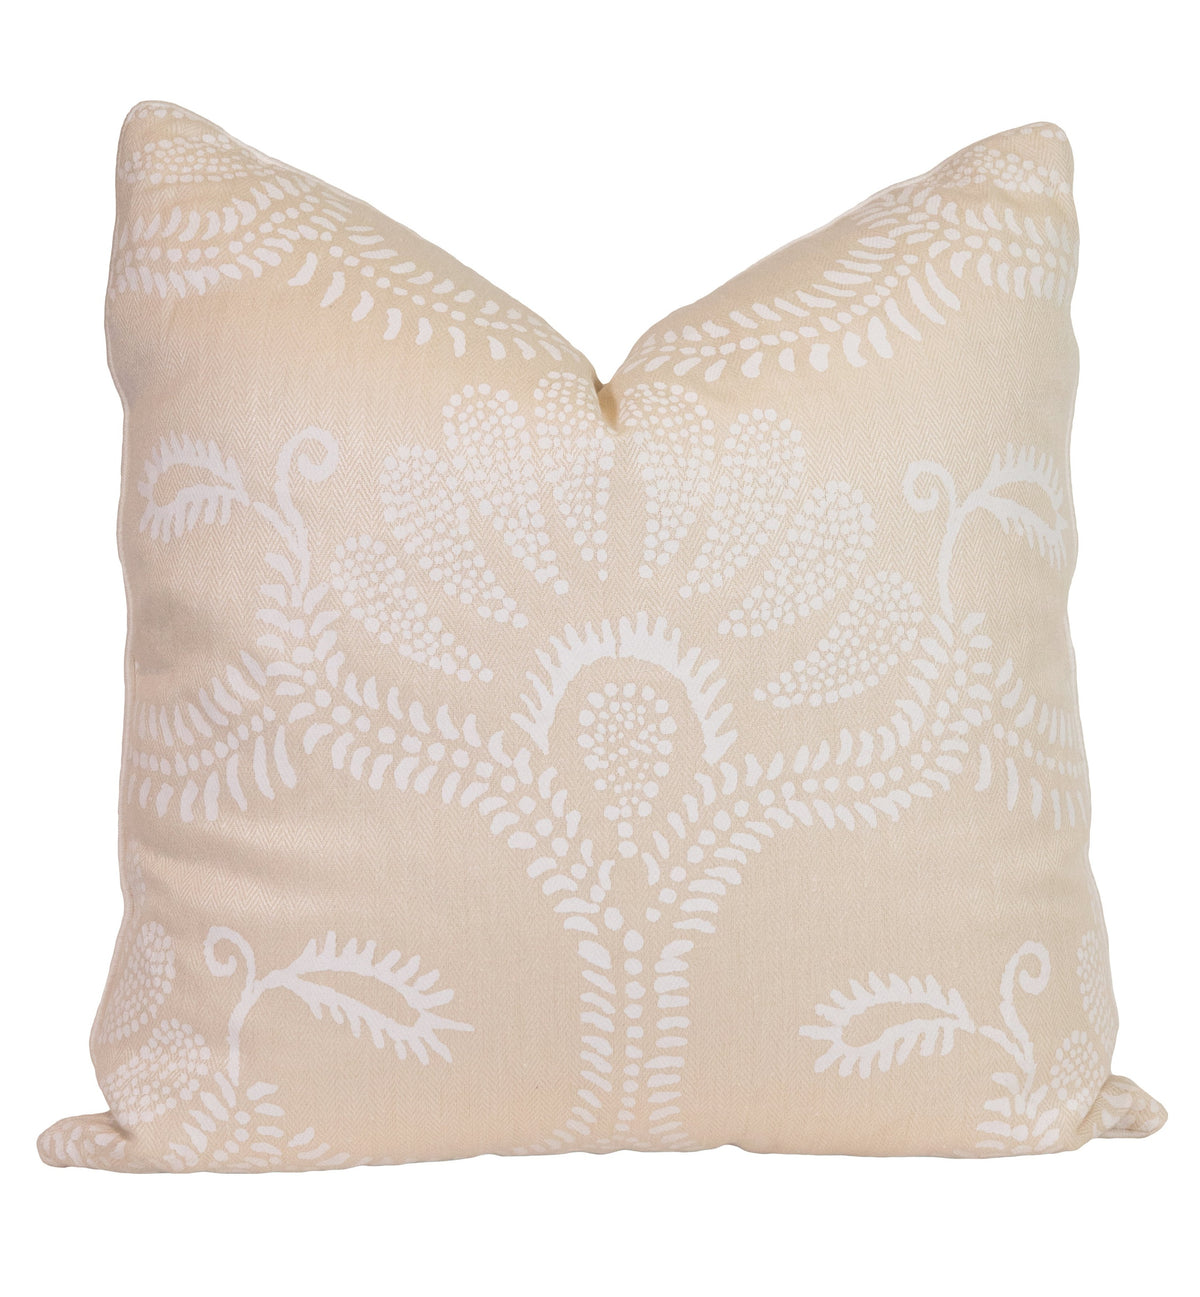 Cream Paisley Fern Pillow